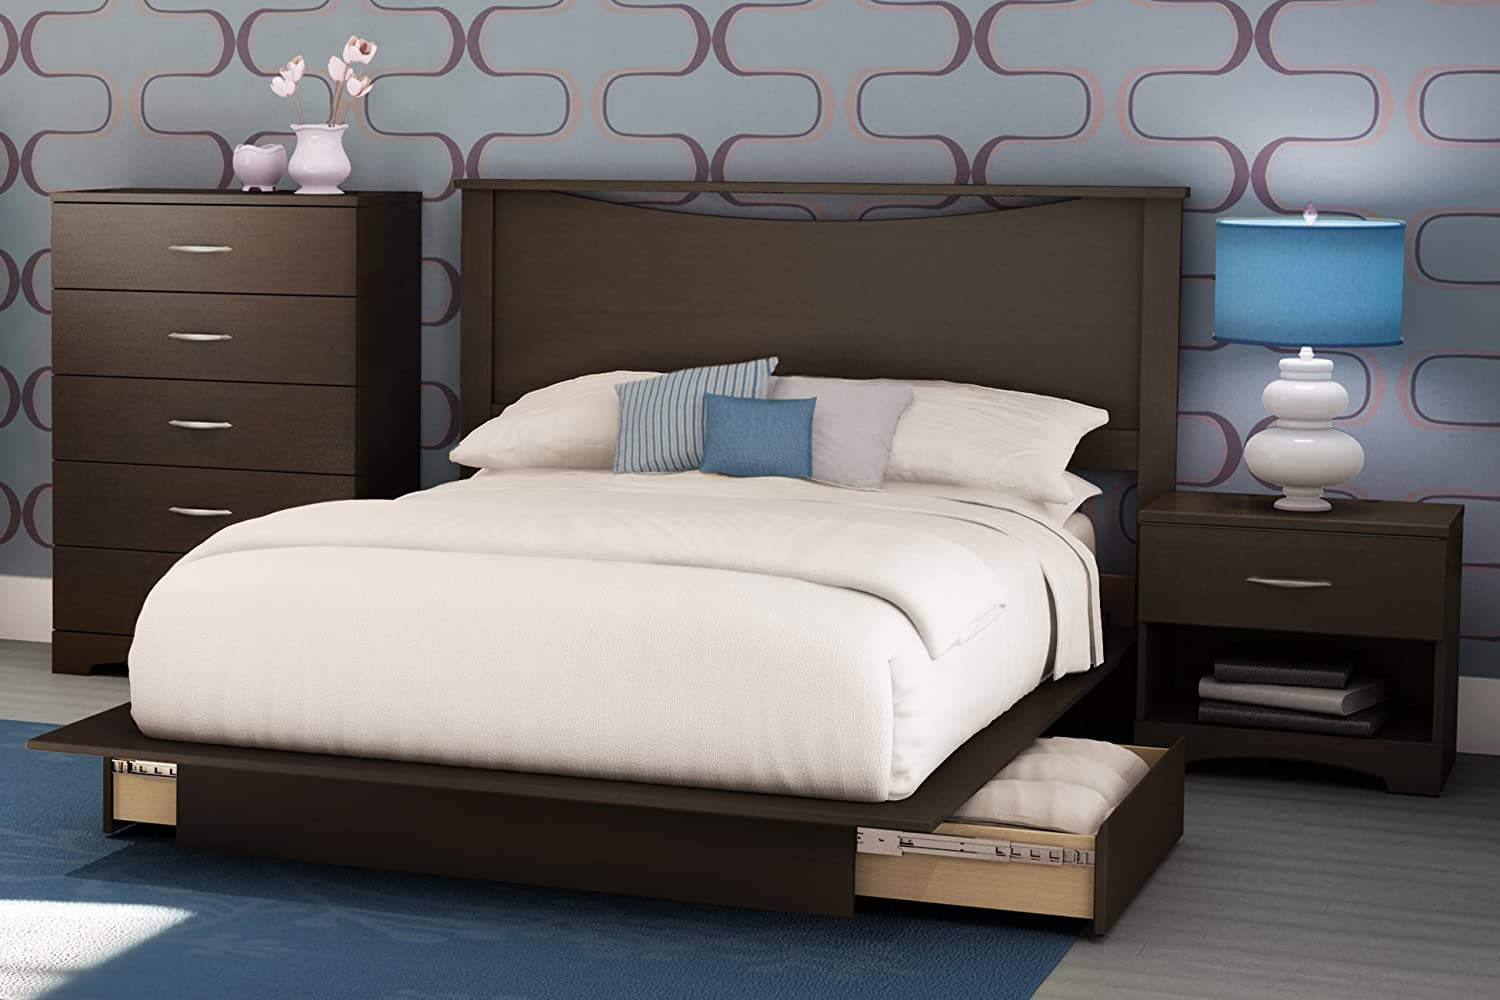 cheap bedroom sets for sale top bedroom sets review 11437 | 71gy3mgz3dl sl1500